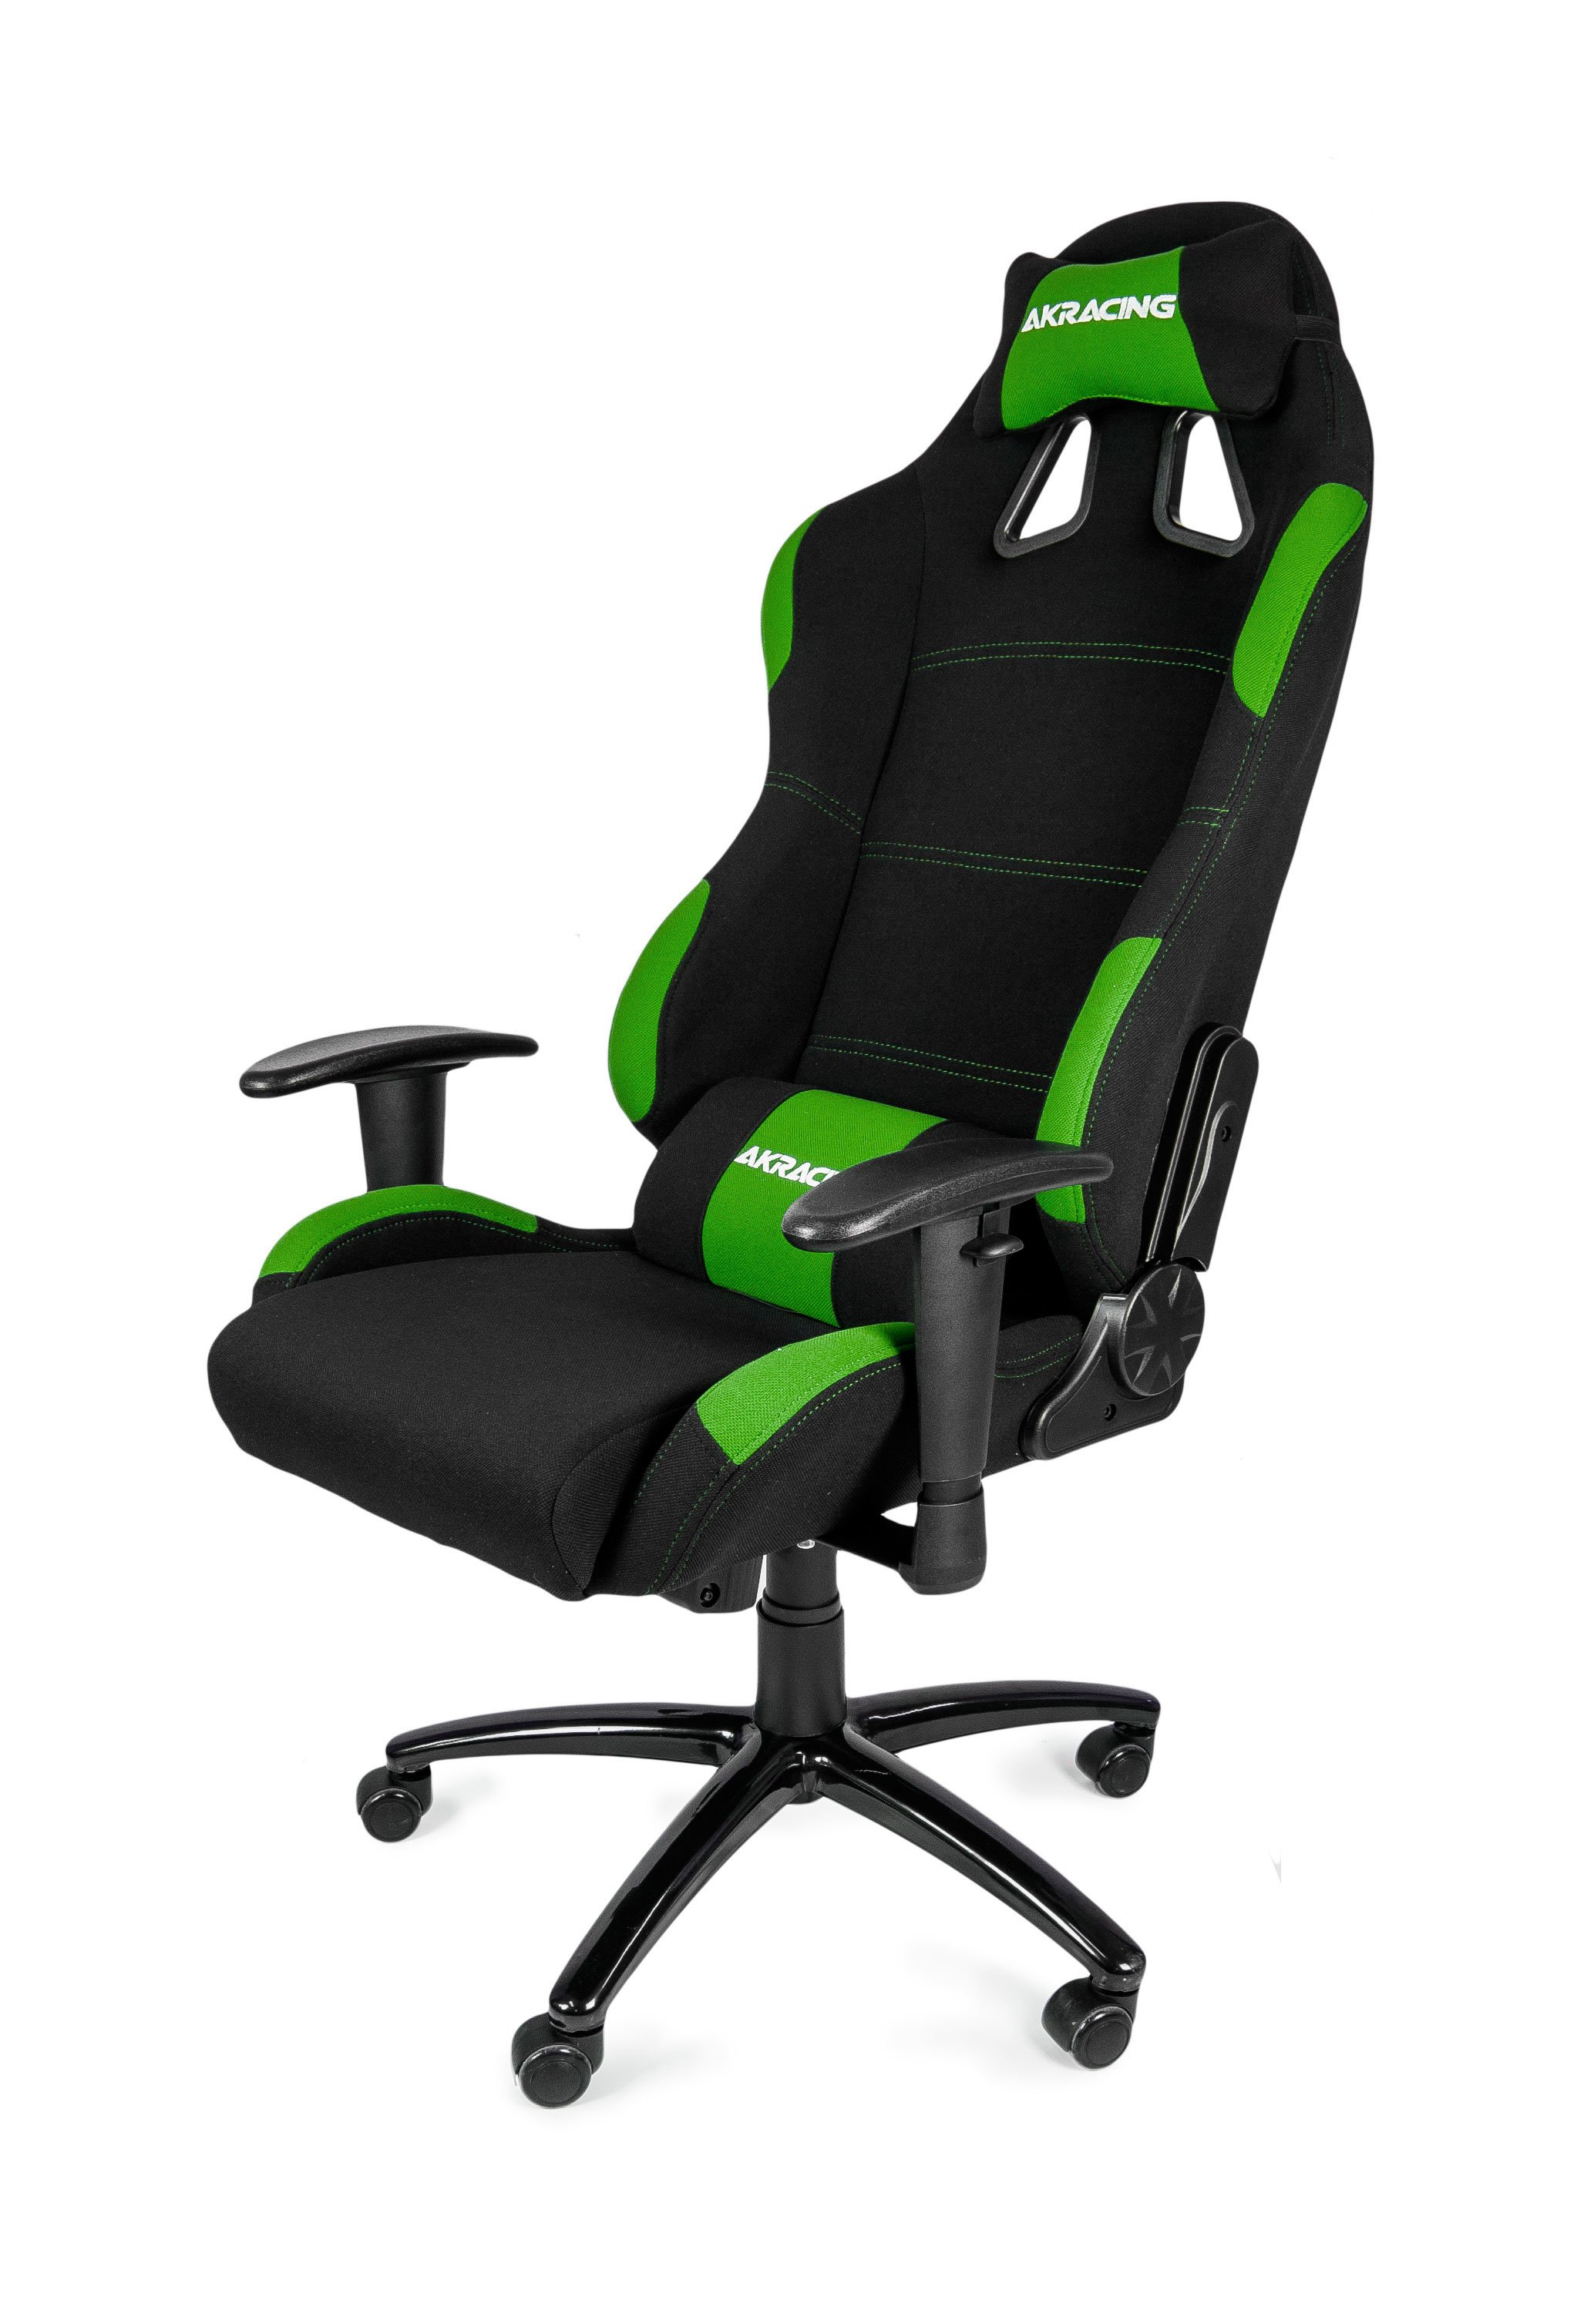 racing gaming chair akracing blackgreen